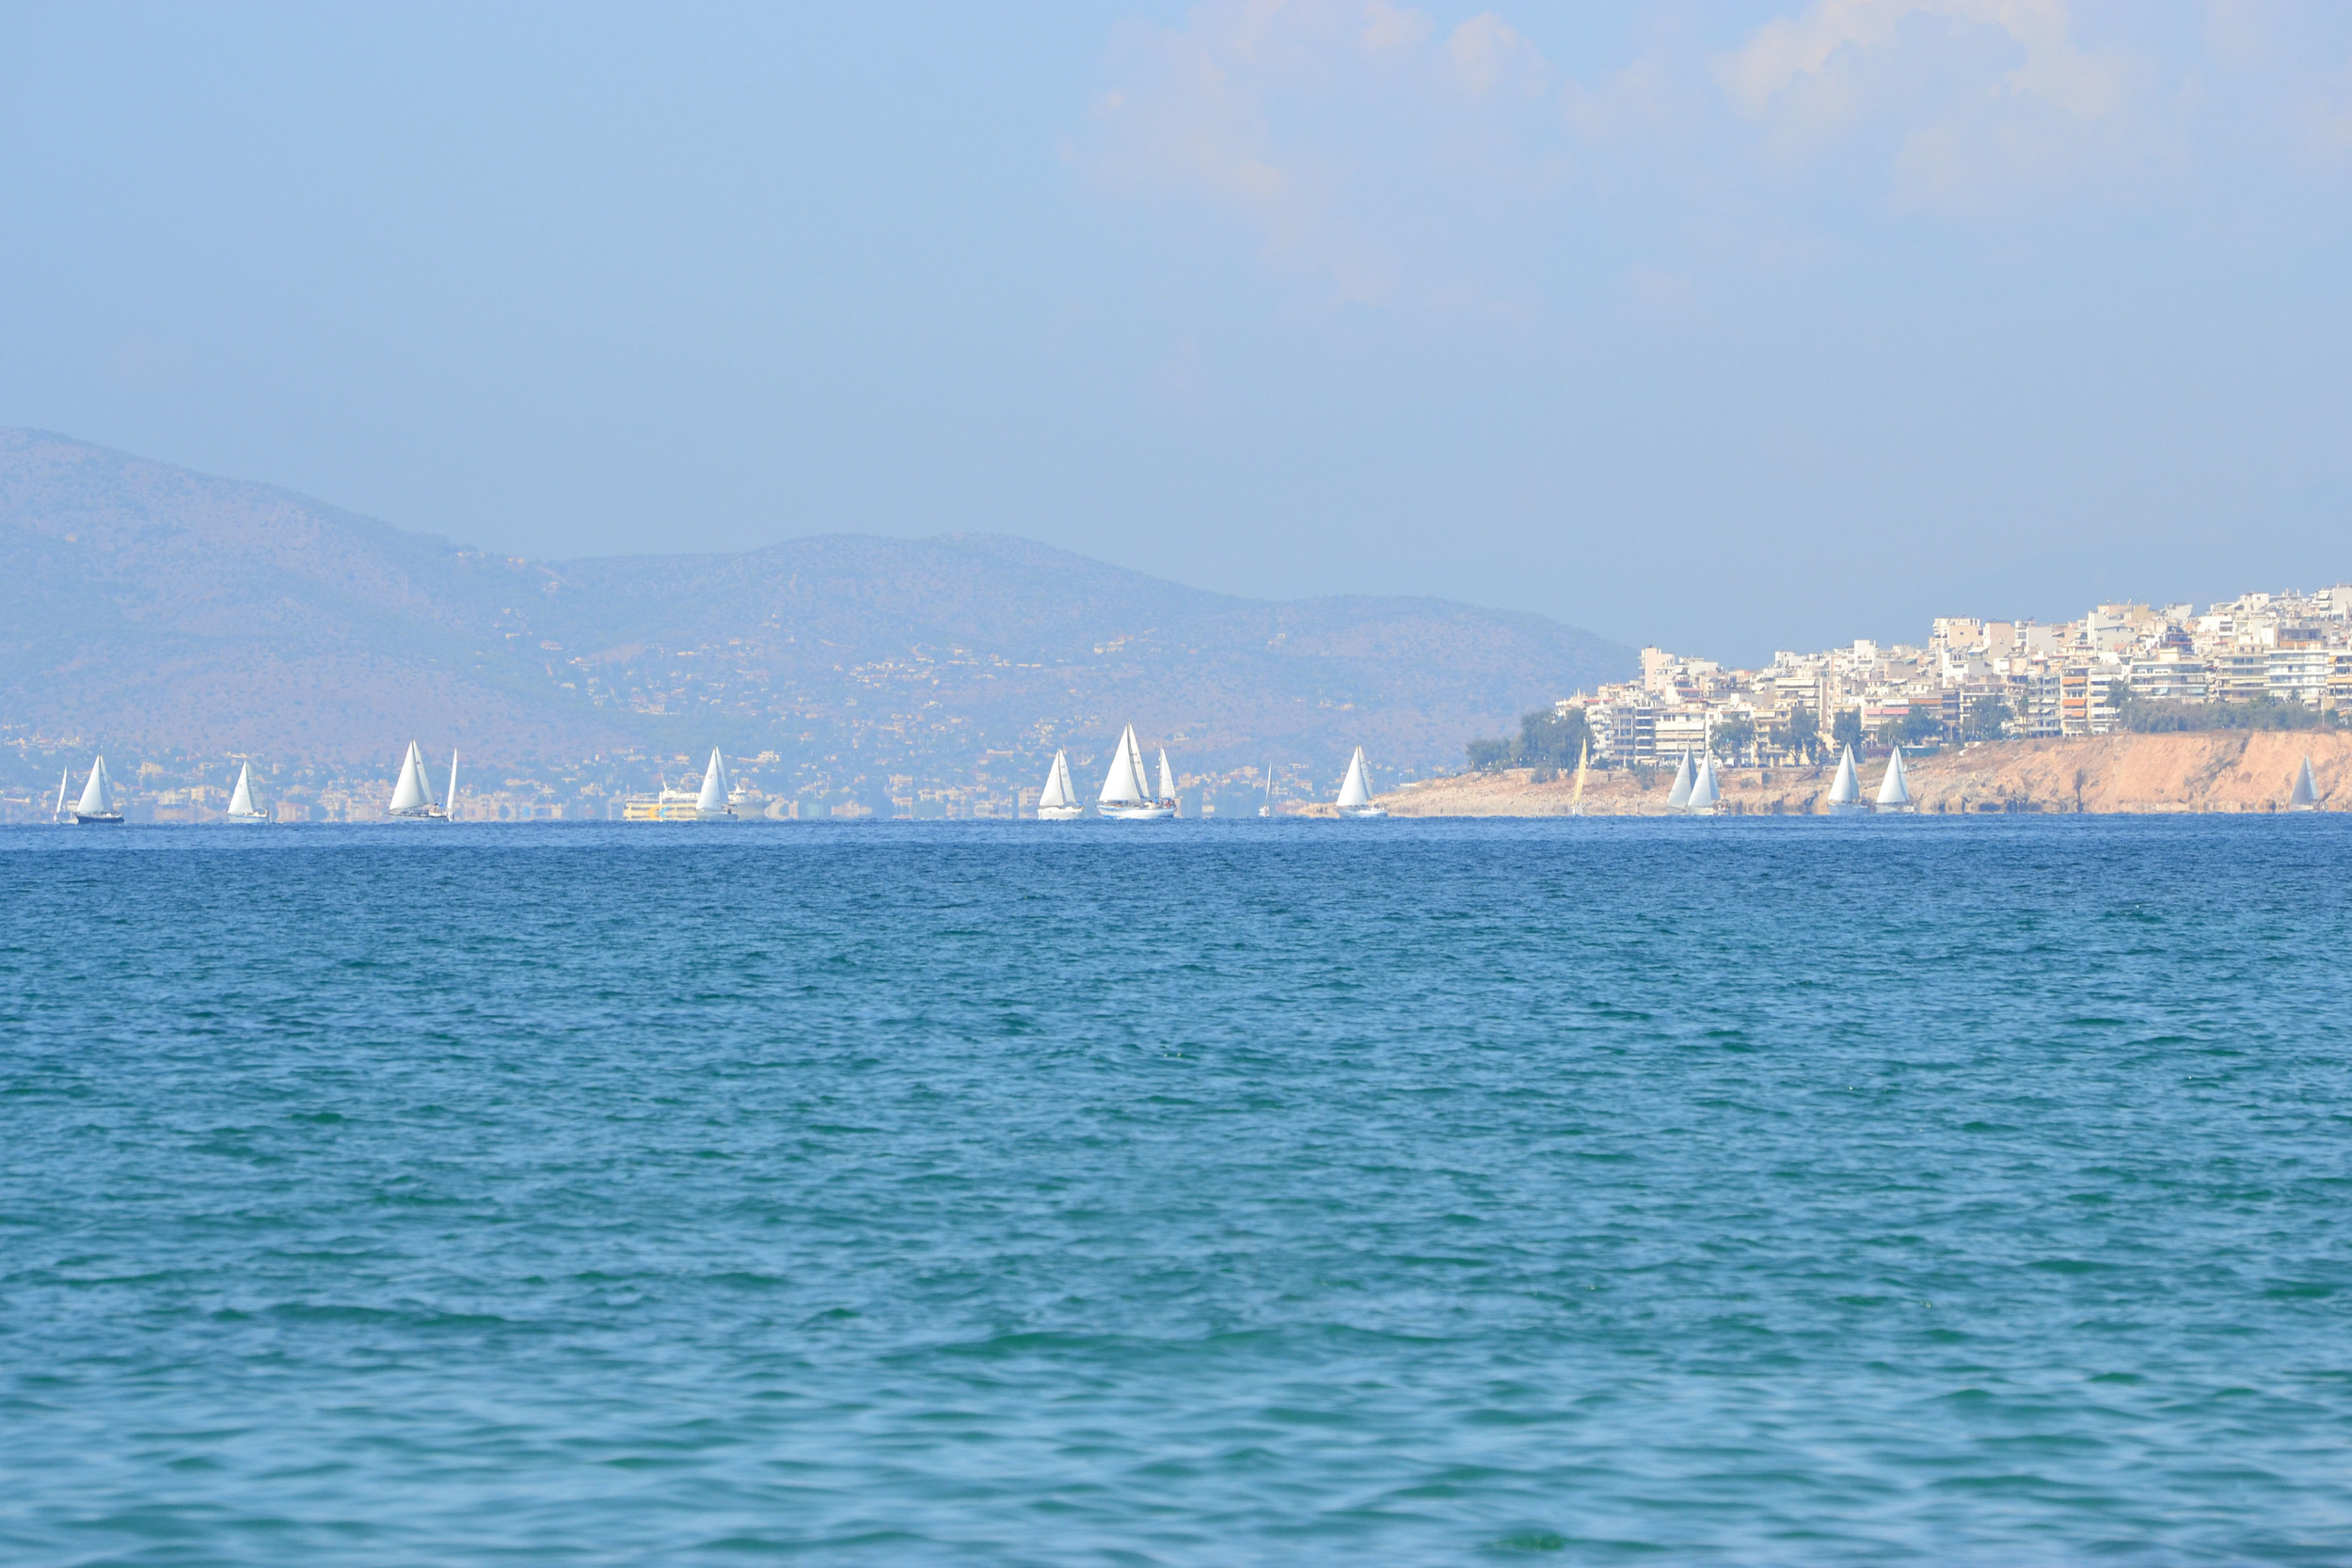 My first day in Athens, sitting on the beach and looking out.